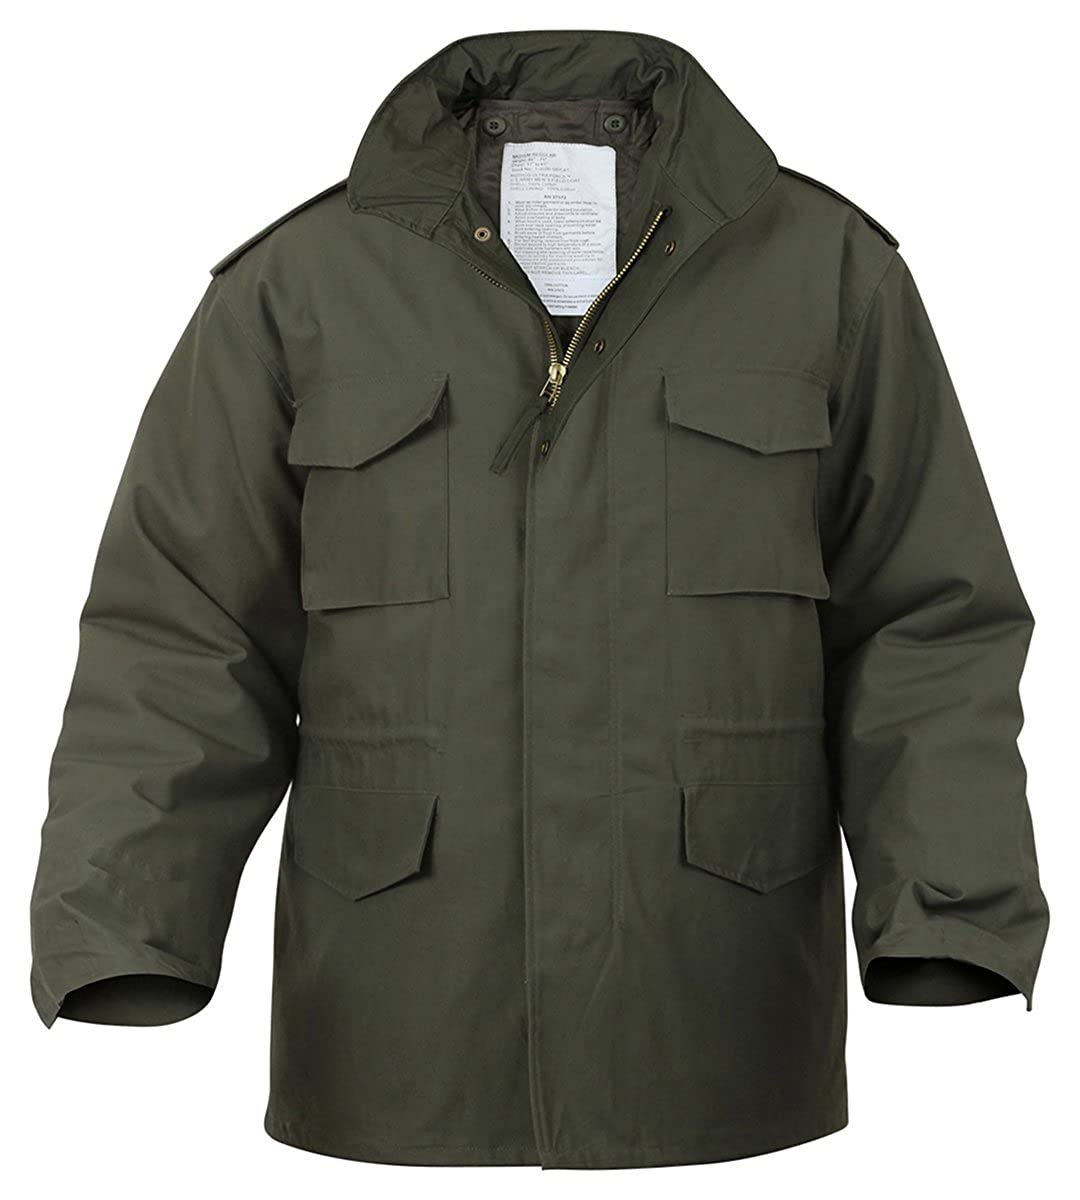 Amazon.com  Ultra Force Olive Drab M-65 Field Jacket-LARGE  Military Coats  And Jackets  Clothing 2874f5306e5